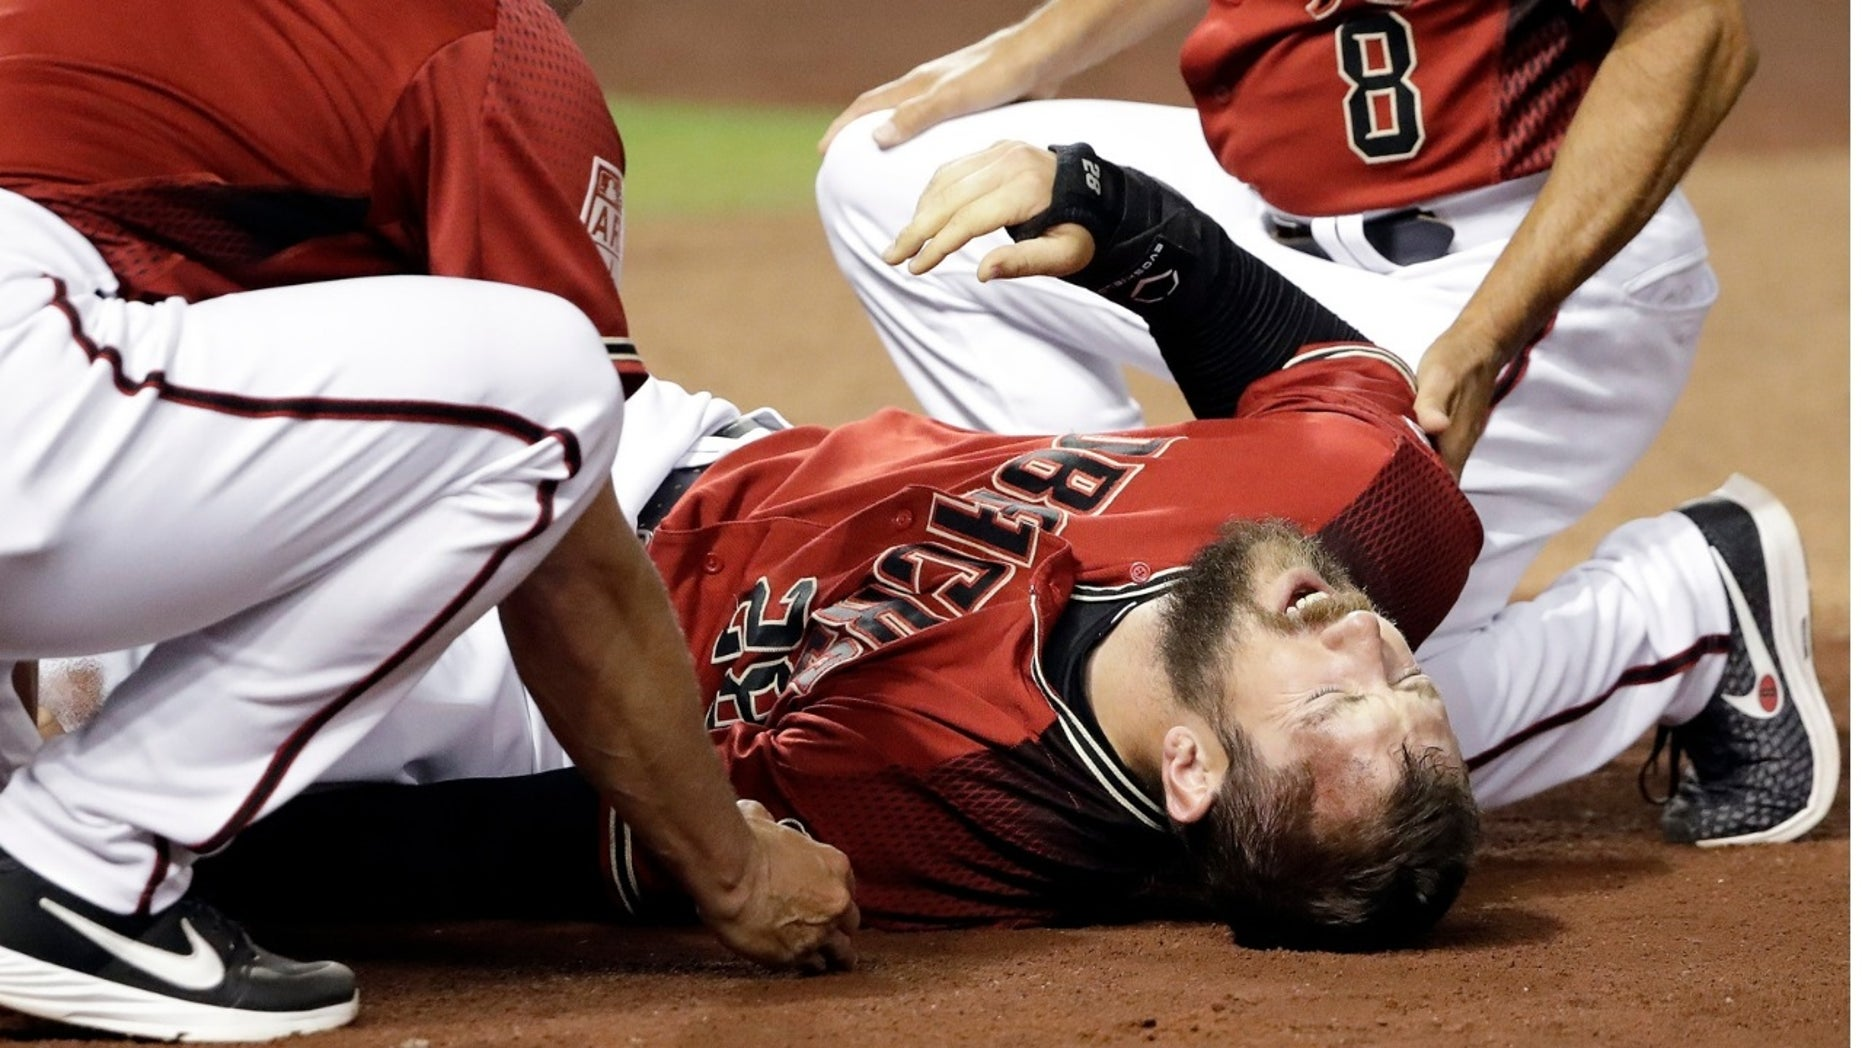 Arizona Diamondbacks right fielder Steven Souza Jr. suffered a gruesome knee injury Tuesday just days before opening day.